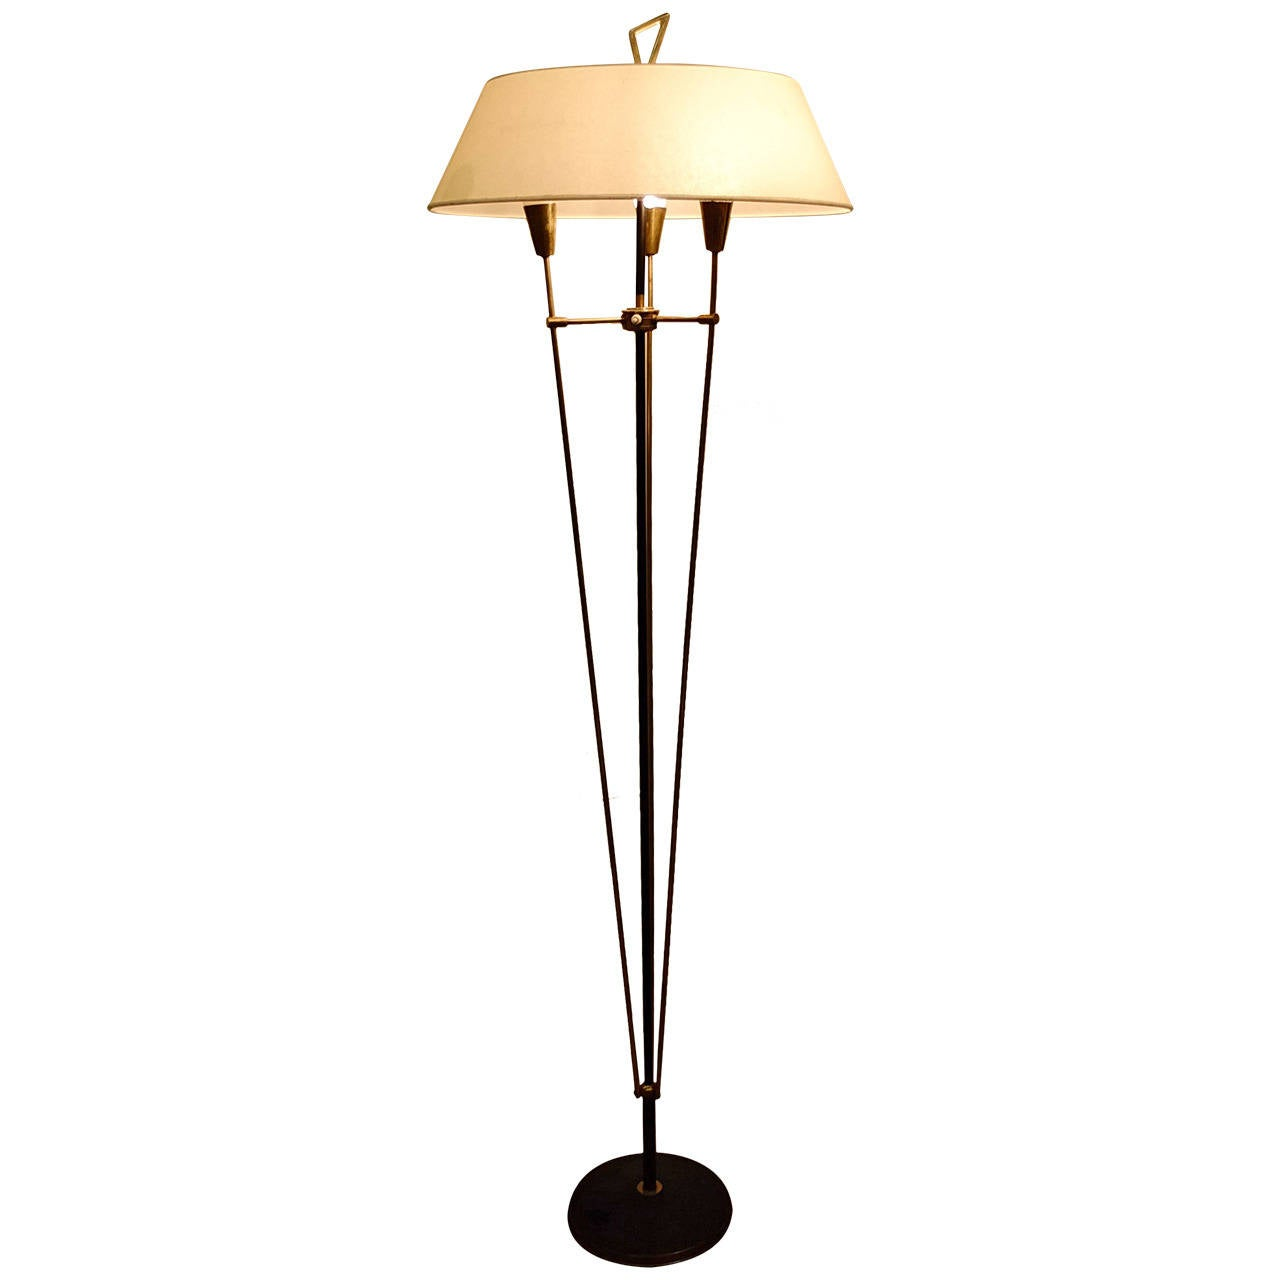 maison arlus 1960 floor lamp at 1stdibs